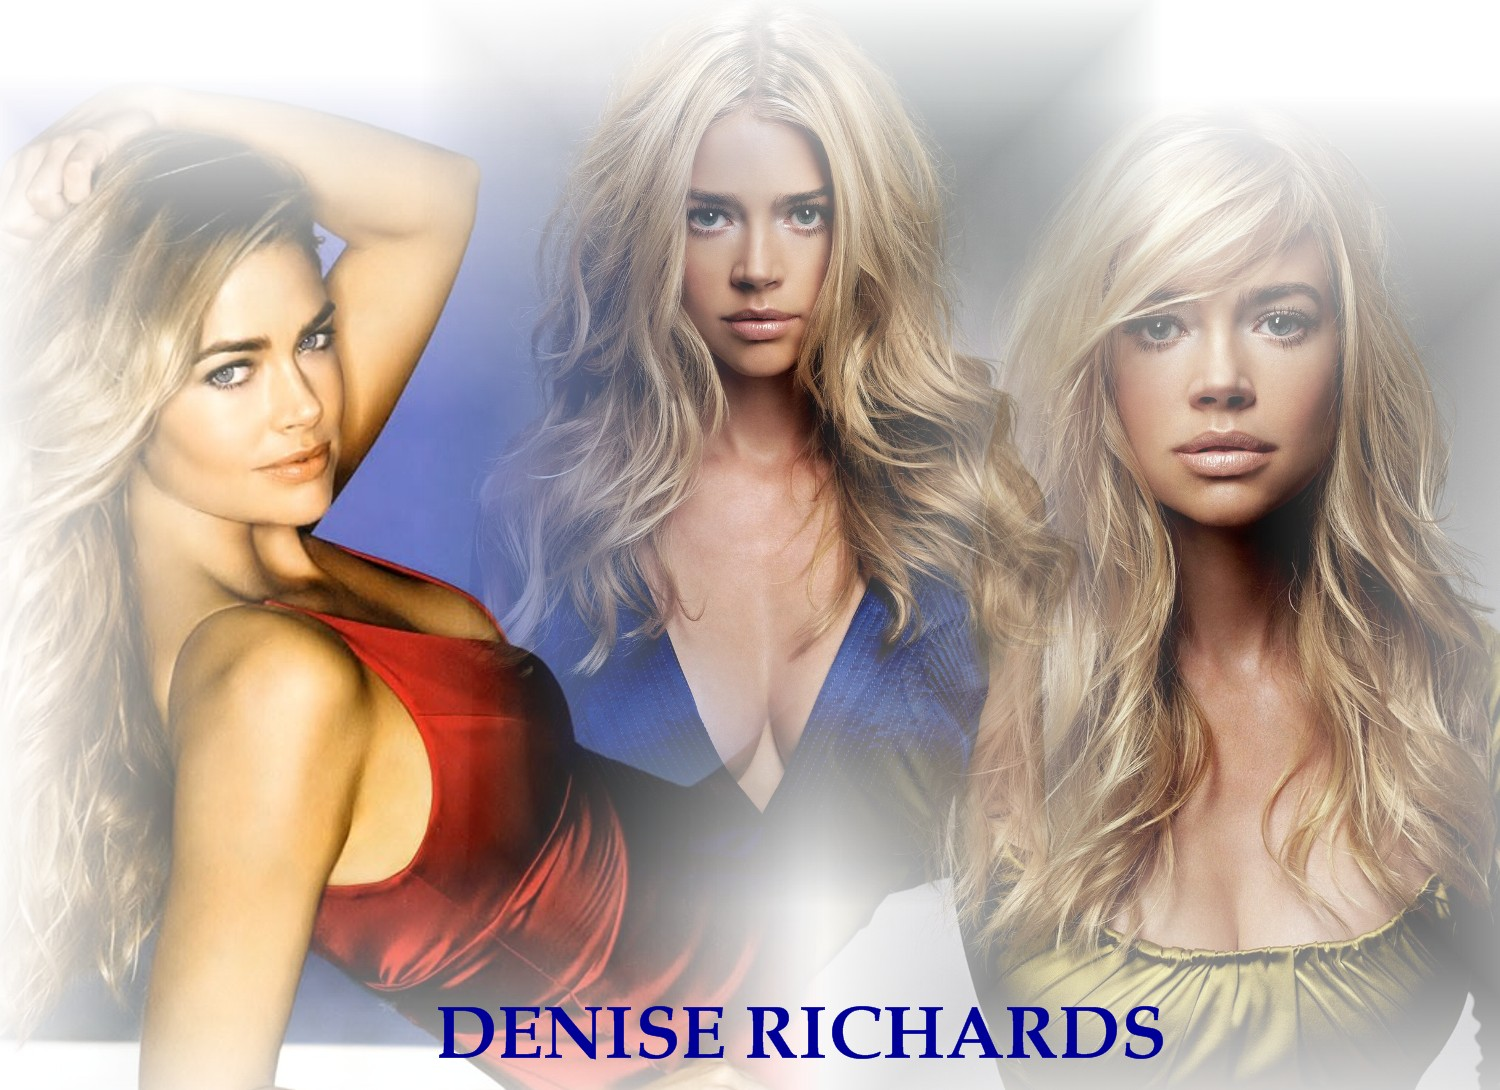 http://fxpaper.fatalsystem.com/images/wallpapers/celebs/denise-richards/denise_richards_23.jpg